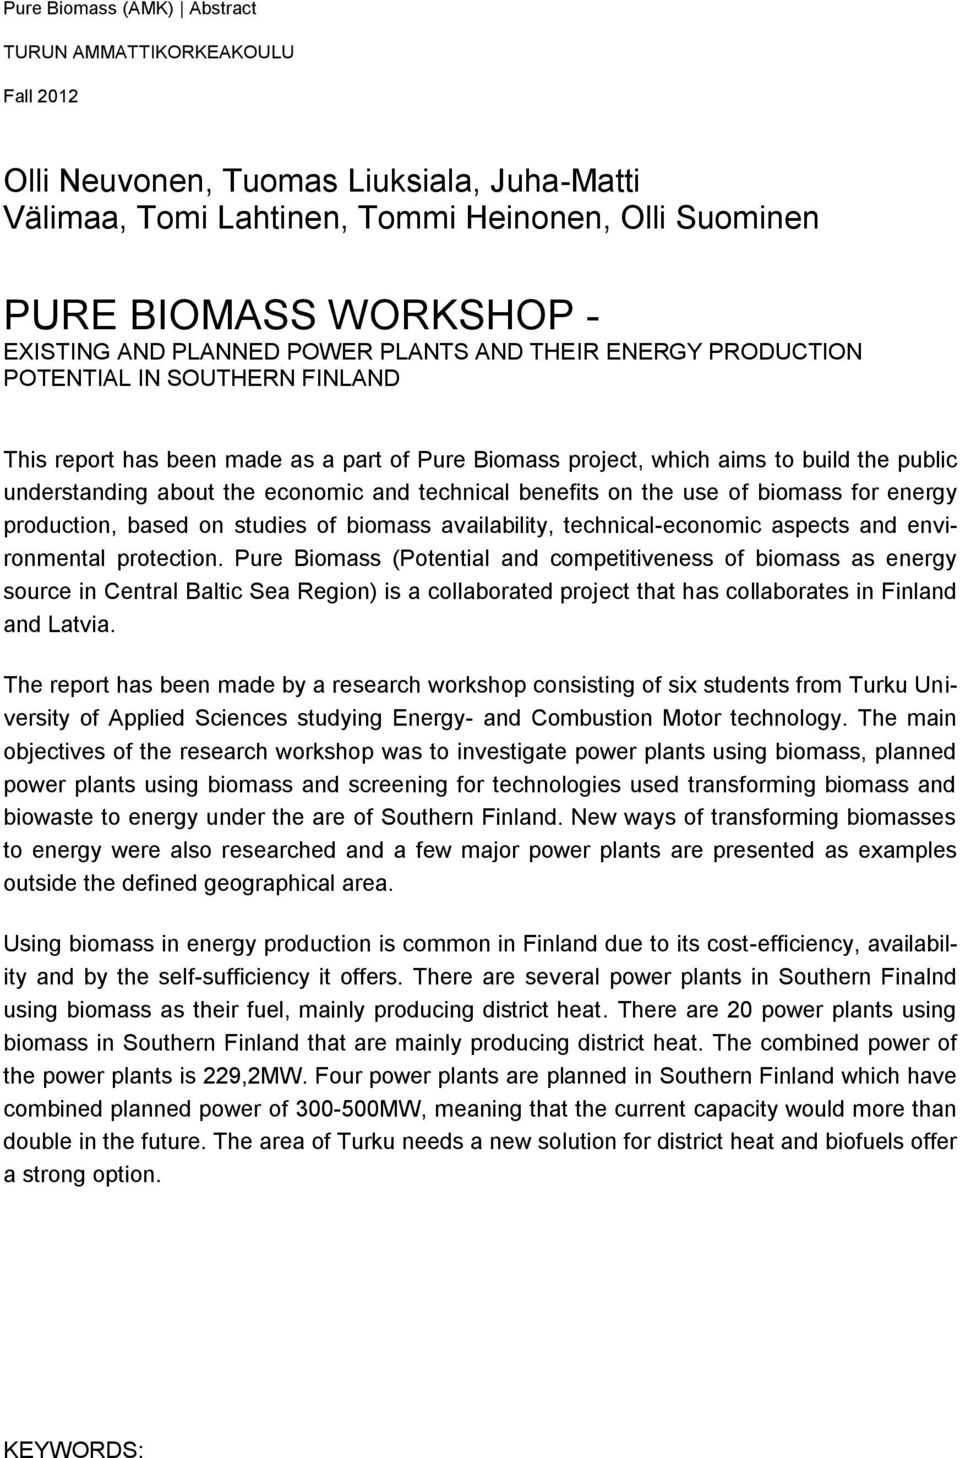 economic and technical benefits on the use of biomass for energy production, based on studies of biomass availability, technical-economic aspects and environmental protection.